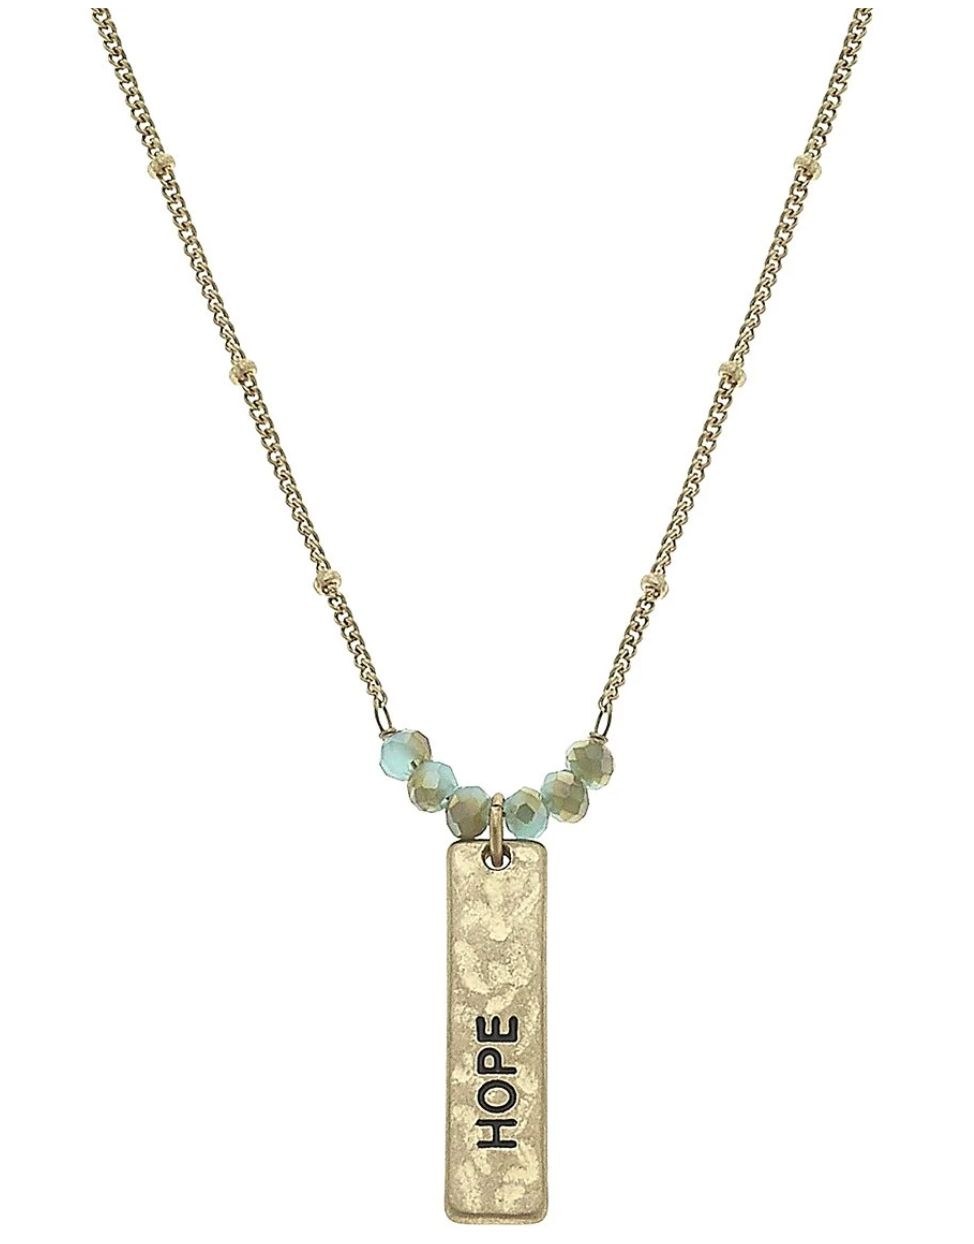 Reversible Hope Bar Necklace - 13 Hub Lane   |  Necklace